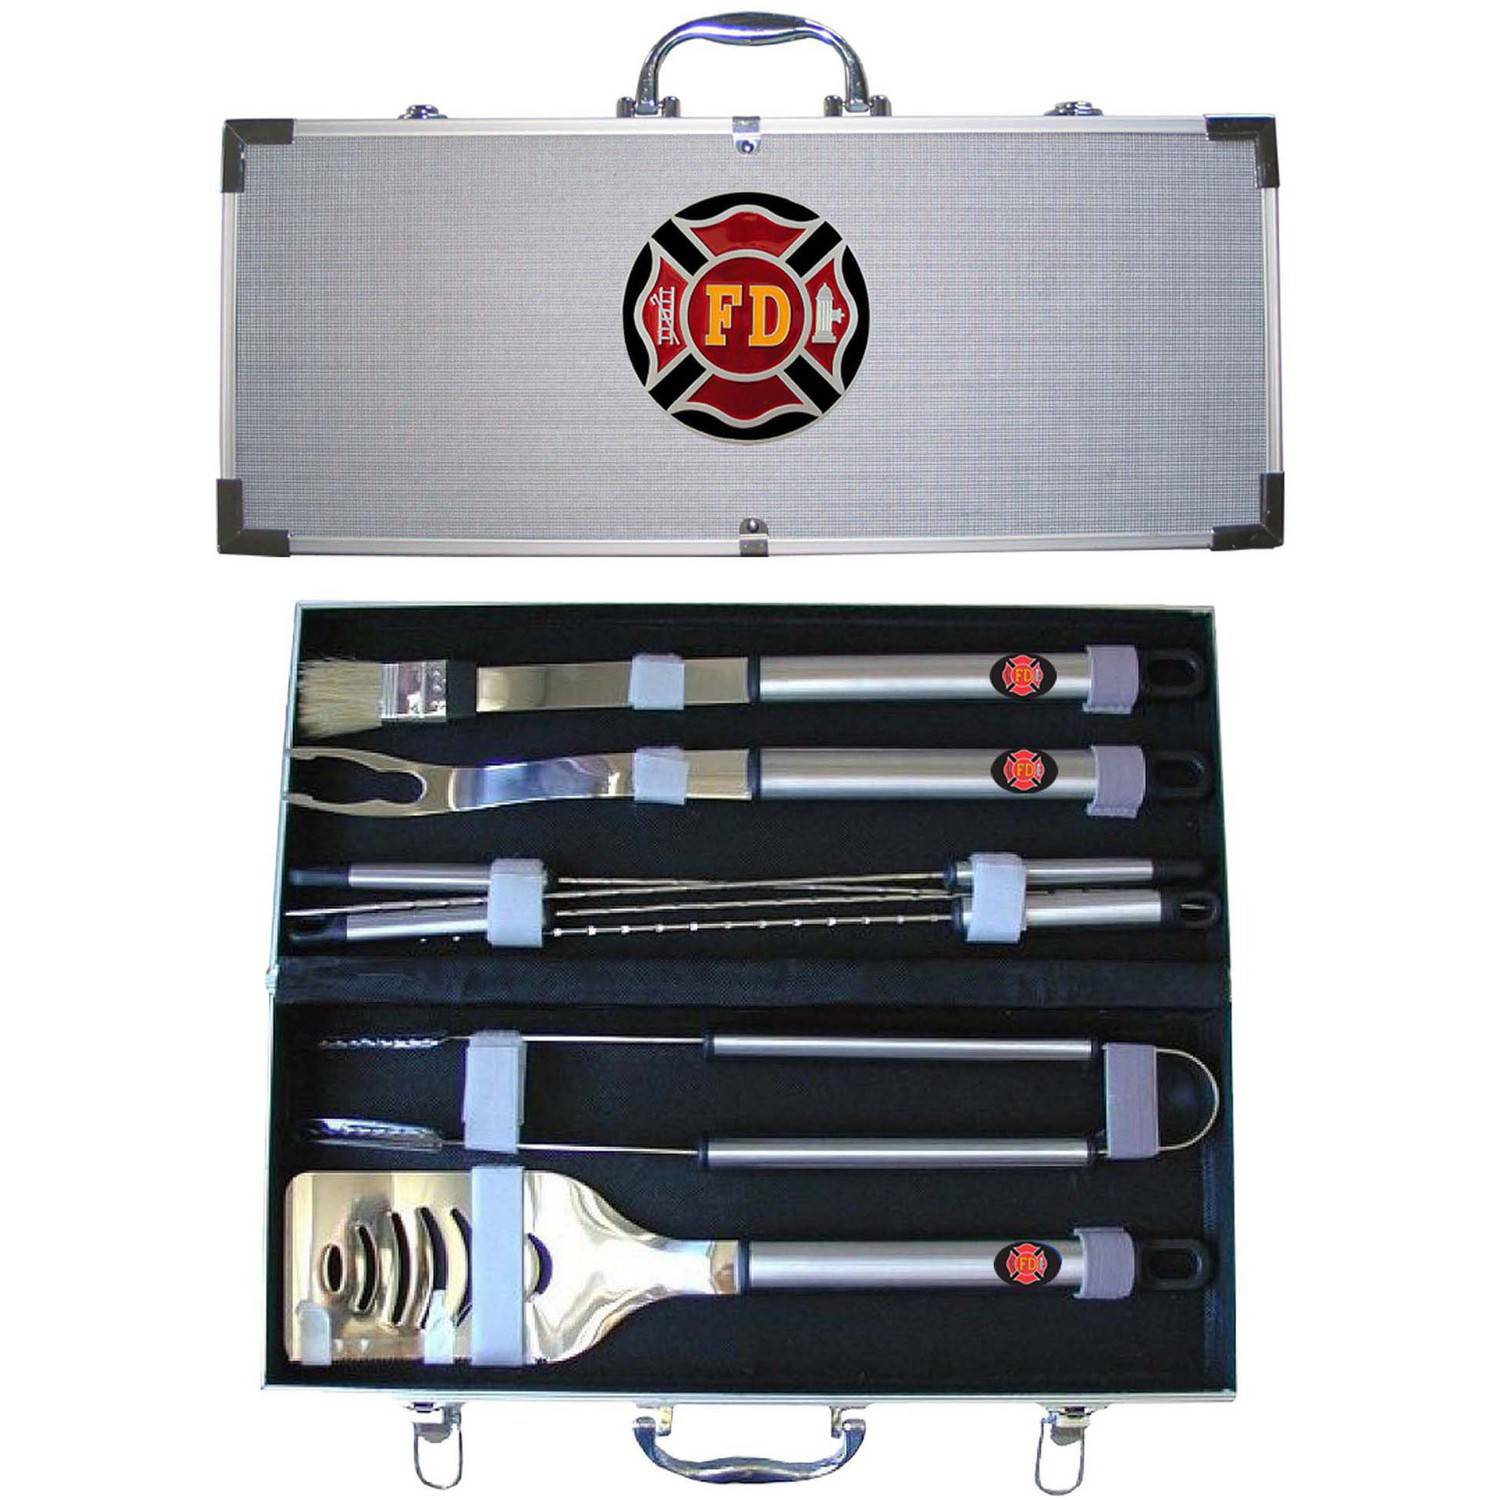 American Heroes 8-Piece BBQ Set with Hard Case, Fire Department